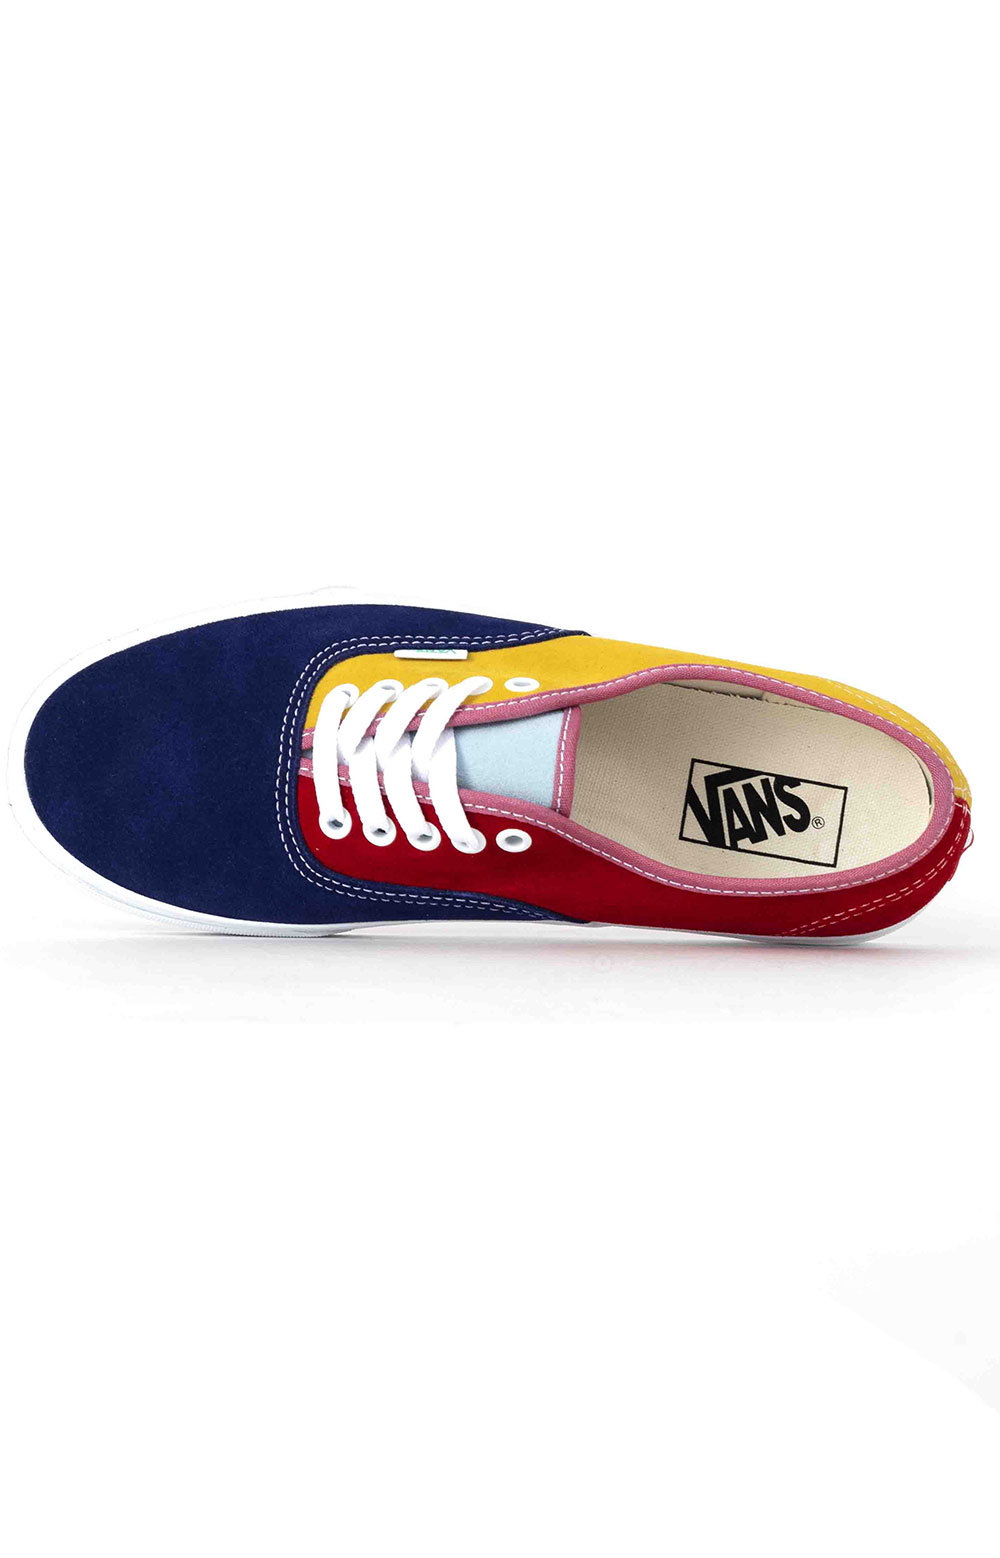 (Z5IWNY) Sunshine Authentic Shoes - Multi/True White  2